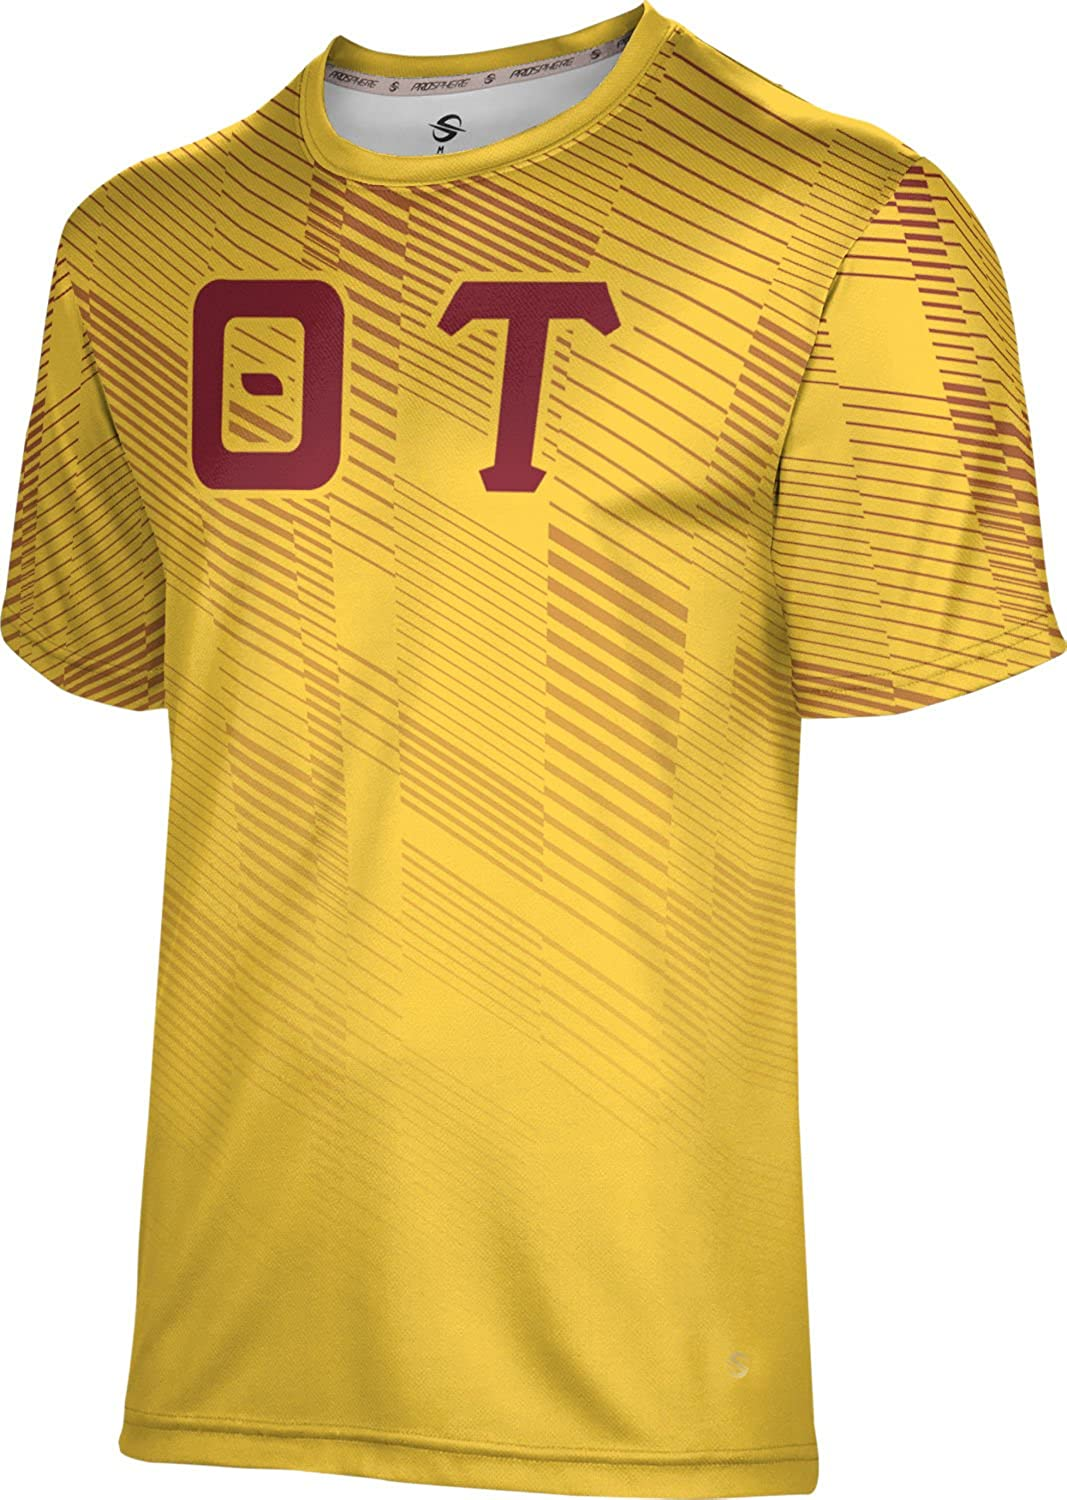 ProSphere Today's only Discount mail order Theta Tau Men's Performance Bold X 2DC52C2B T-Shirt